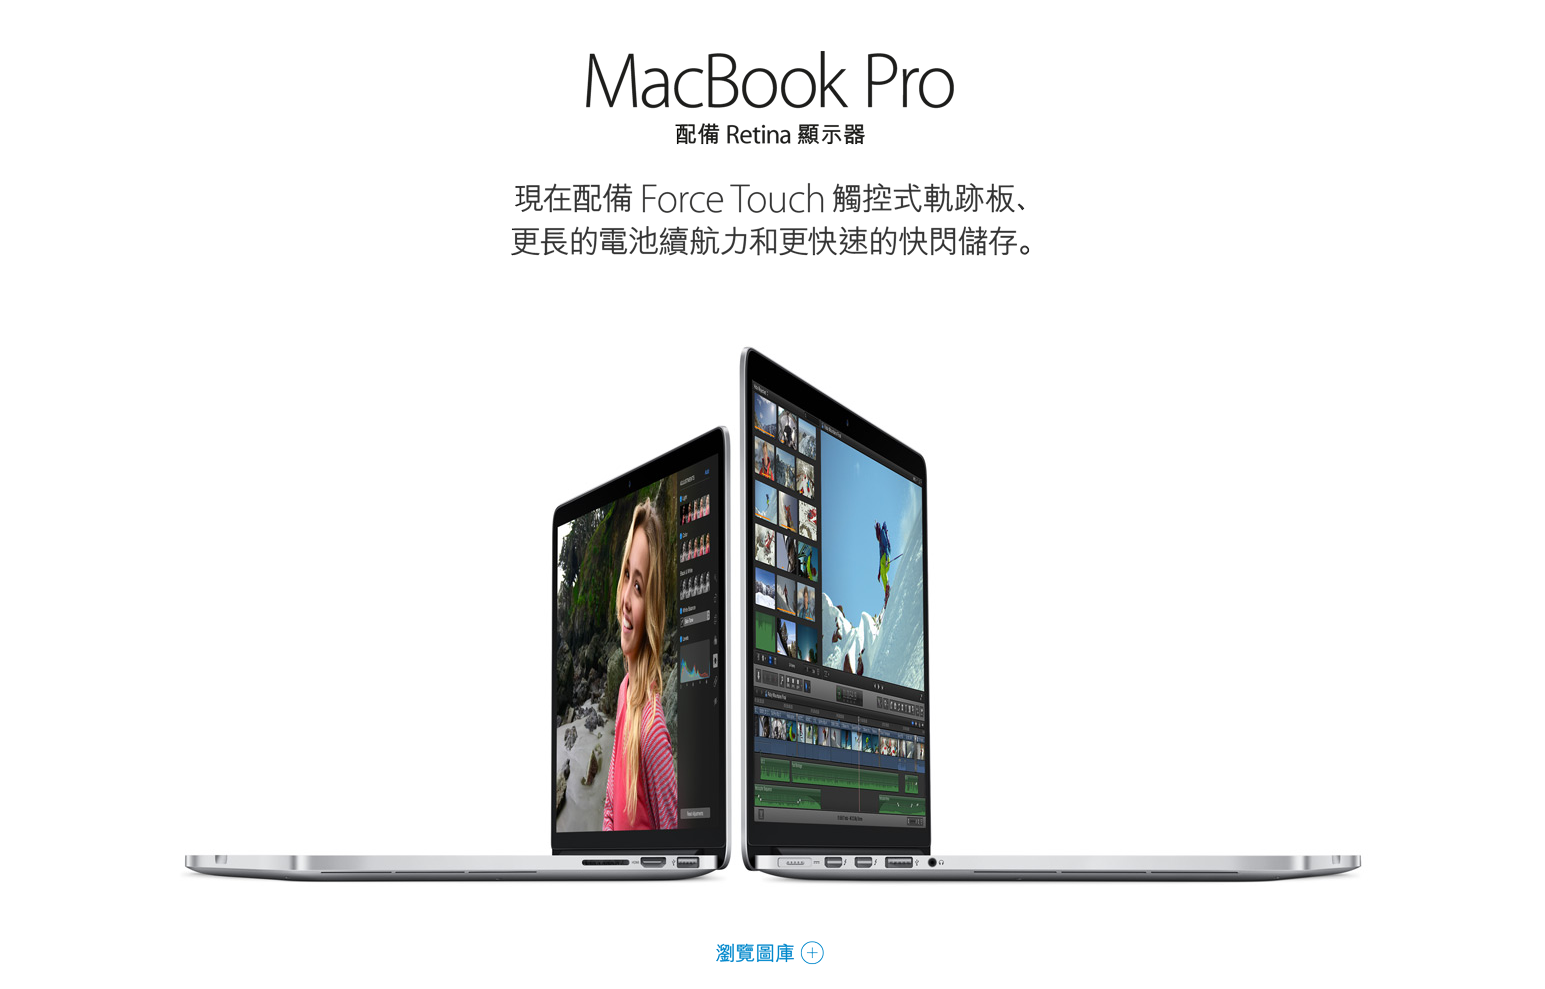 全面導入 AMD Radeon 晶片,MacBook Pro with Retina Display 15 小幅更新